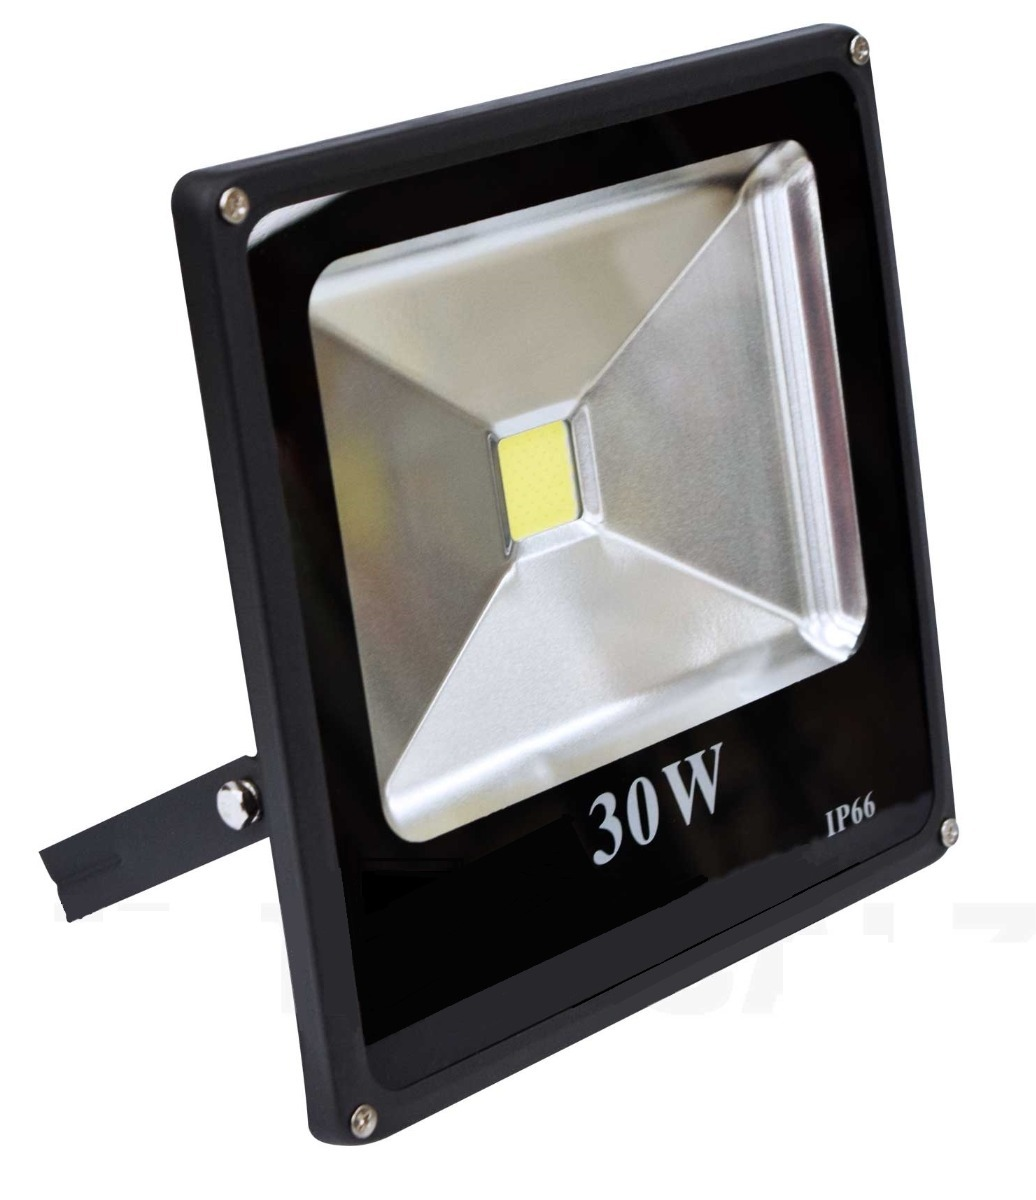 Venta Lamparas Led Reflector Lampara Led 30w Munich Lumina 1000w 355 00